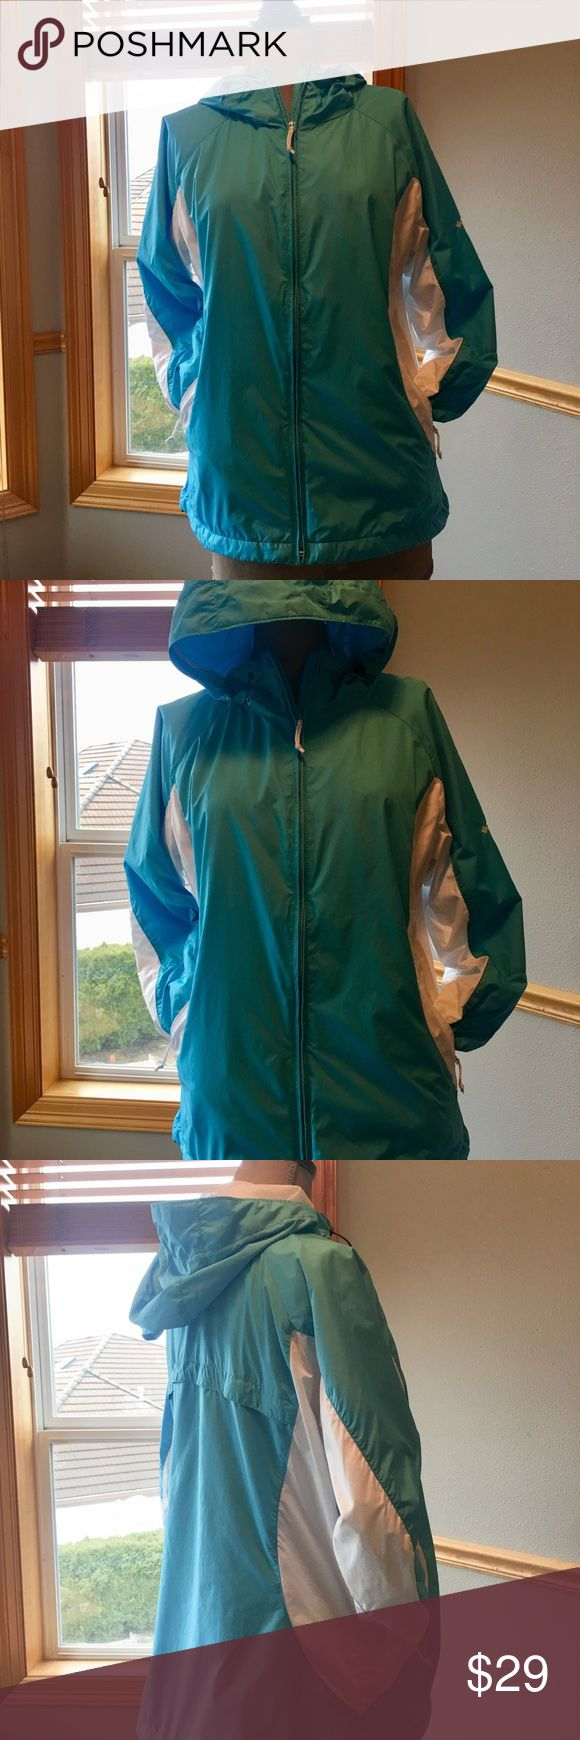 Columbia Sportswear Jacket Lightweight windbreaker. Water-resistant. Breathable lining. GUC. Columbia Jackets & Coats